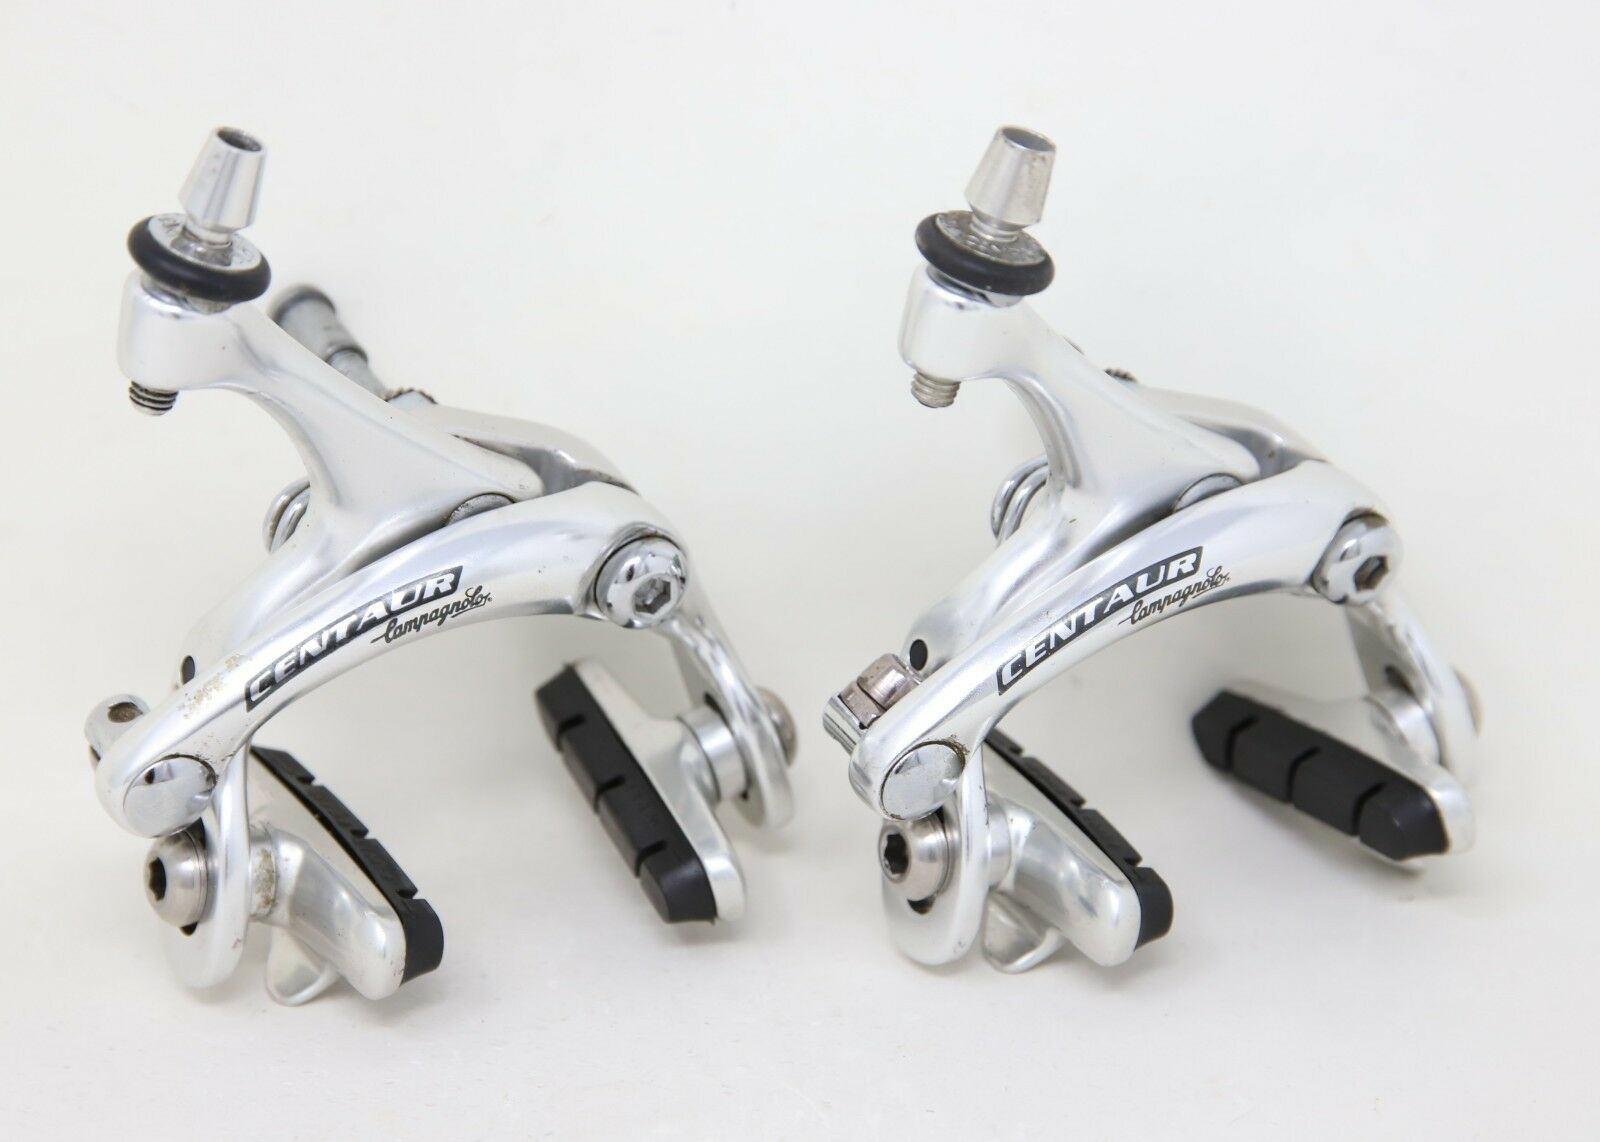 CAMPAGNOLO CENTAUR DUAL PIVOT BRAKE CALIPERS BRAKES early 90s - EXCELLENT